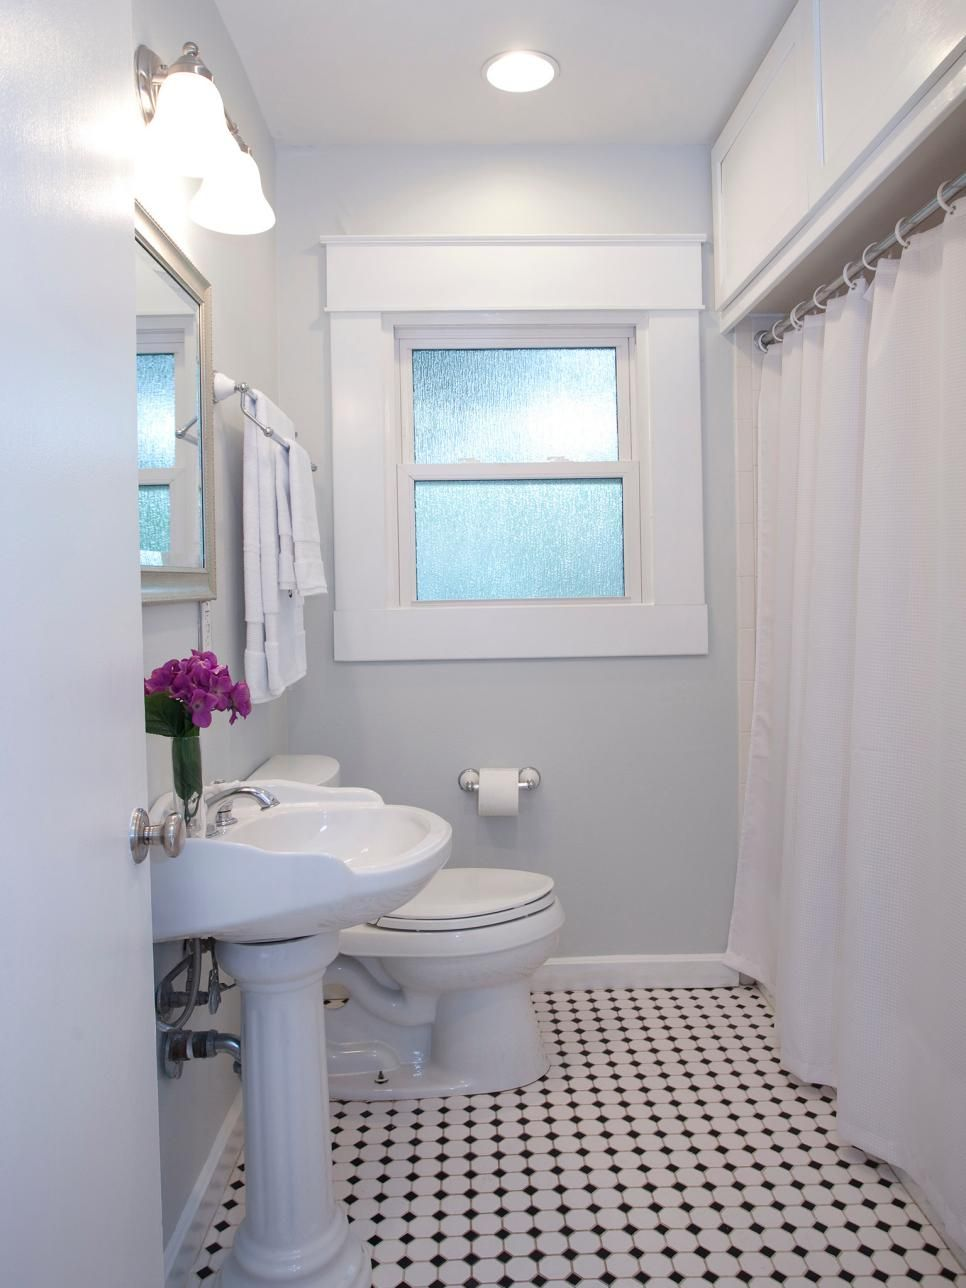 Before And After 30 Incredible Small Bathroom Makeovers Bathroom Design Trends Small Bathroom Small Bathroom Makeover